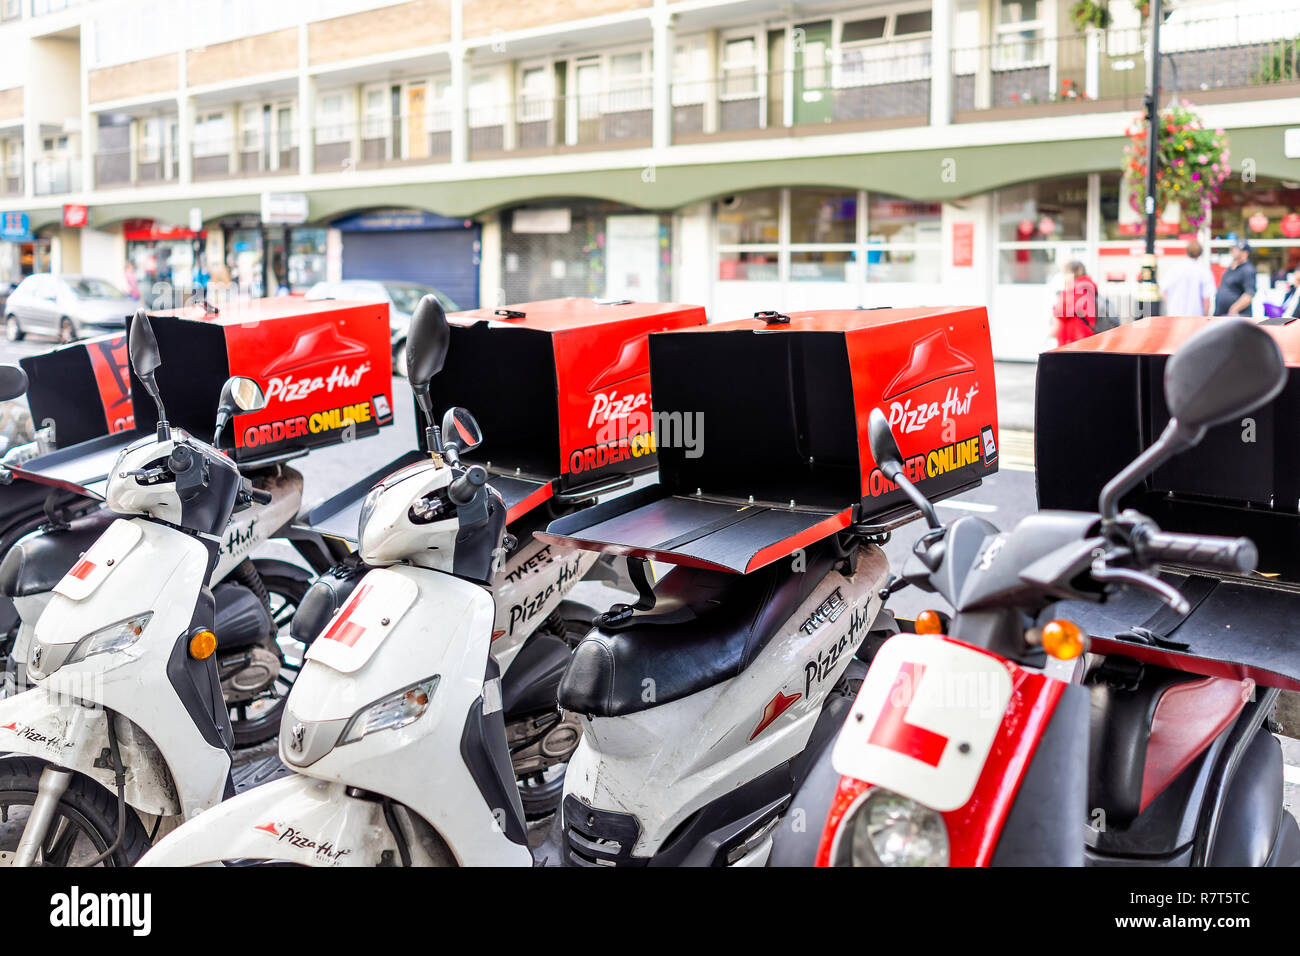 London, UK - September 16, 2018: Row of many Pizza Hut online delivery scooters, motorcycles parking, parked by road street curb in Pimlico with nobod - Stock Image